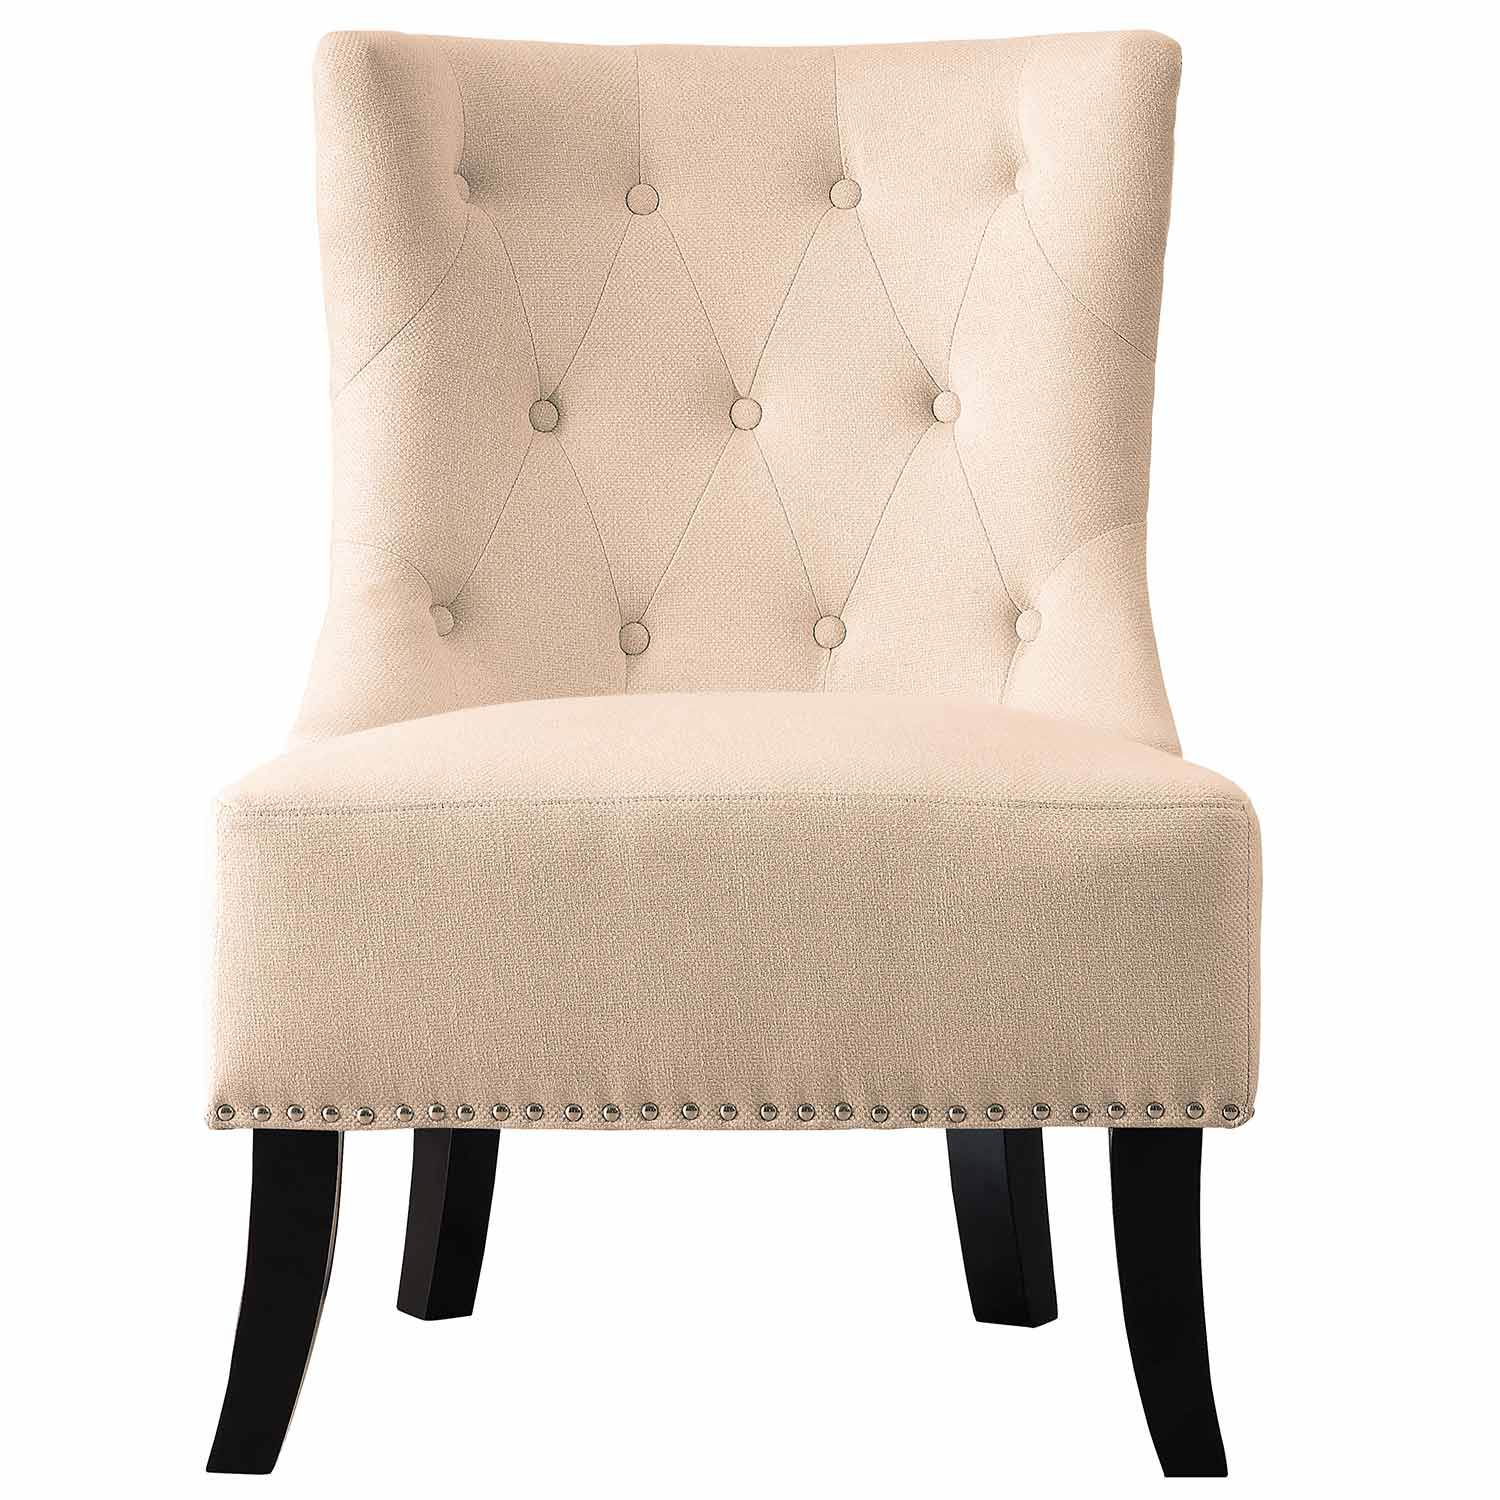 Homelegance Paighton Accent Chair - Beige